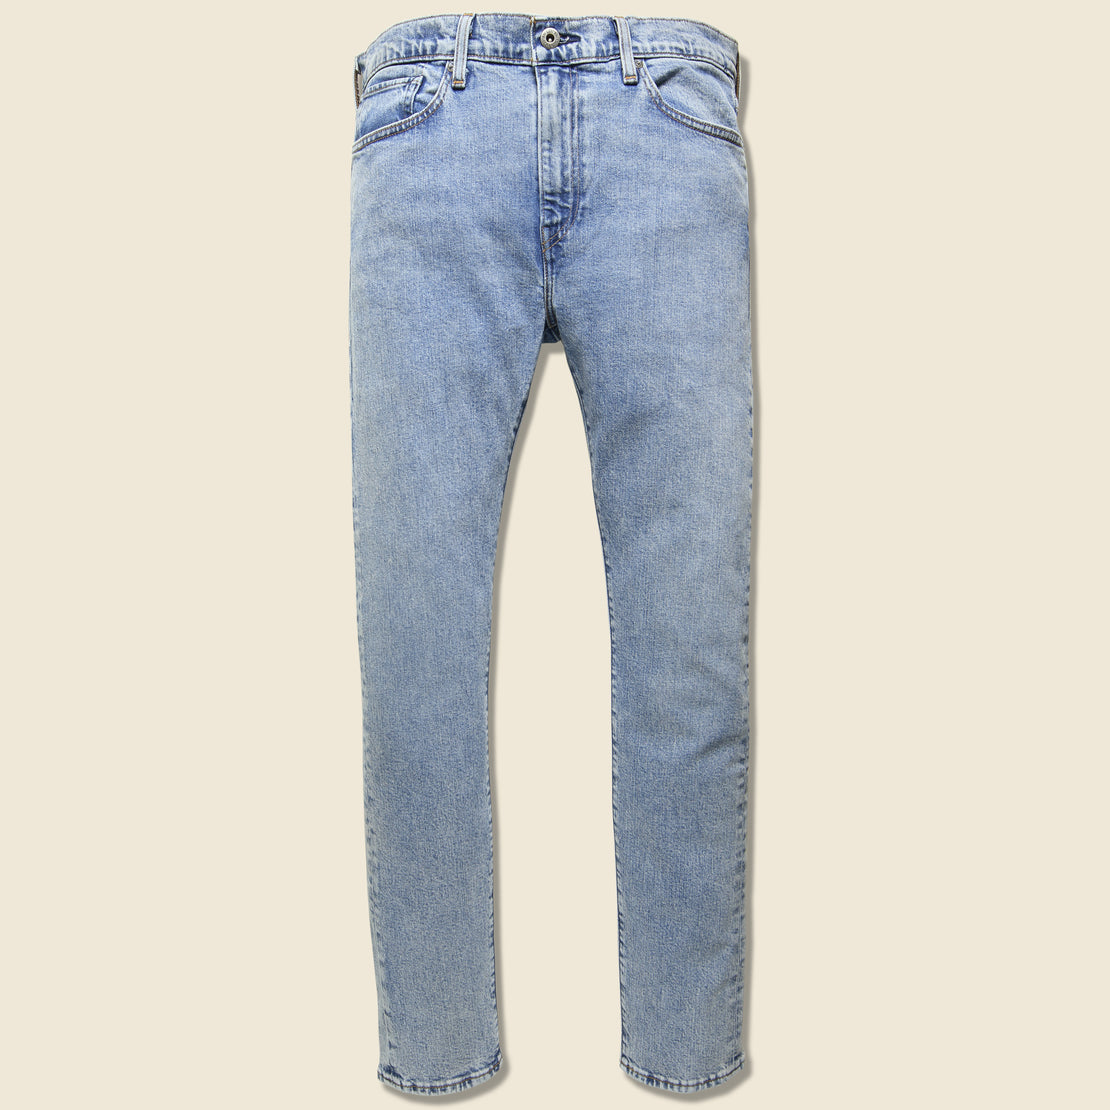 Levis Made & Crafted 510 Skinny Jean - Westward Sun